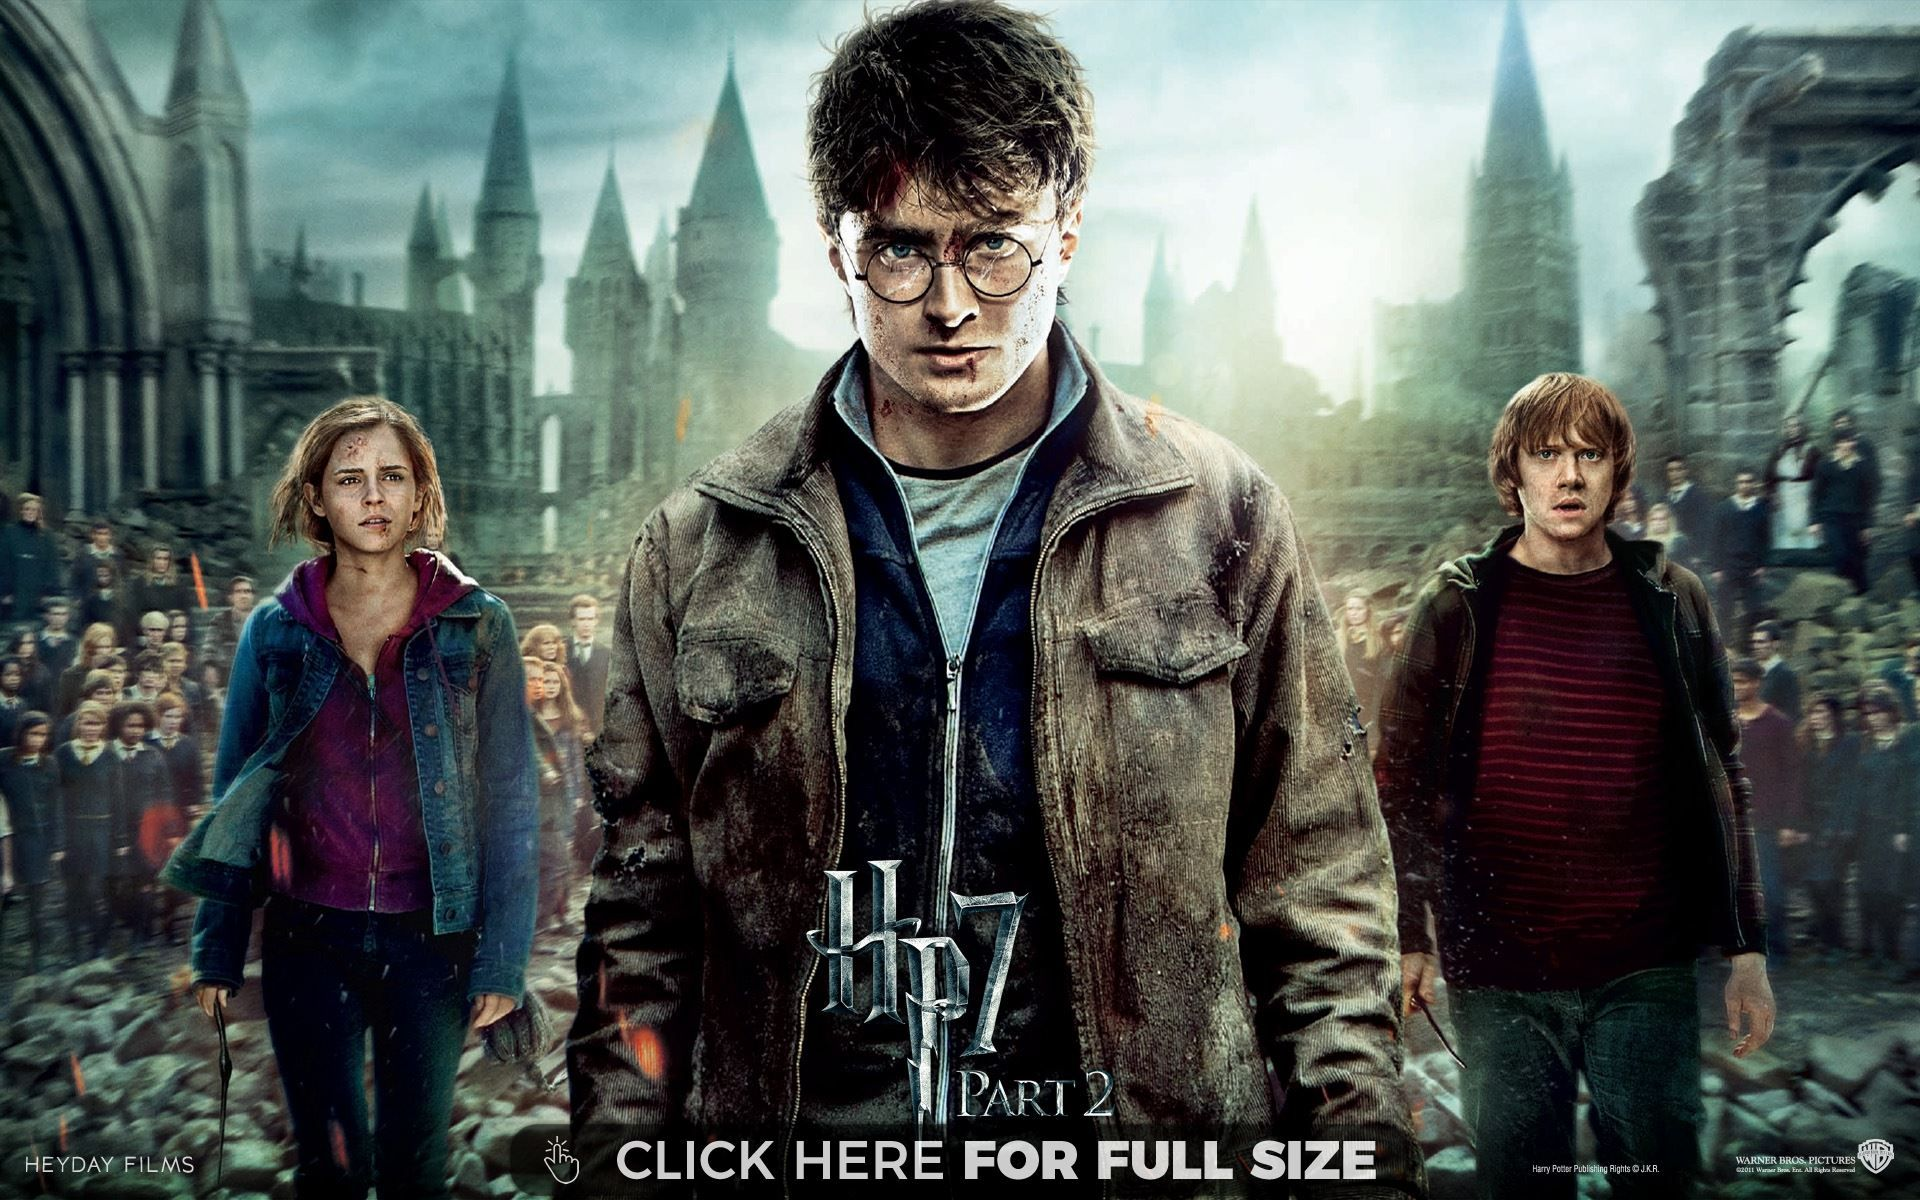 Harry Potter And The Deathly Hallows Part Harry Potter Wiki Harry Potter Movies Harry Potter Wallpaper Deathly Hallows Part 2